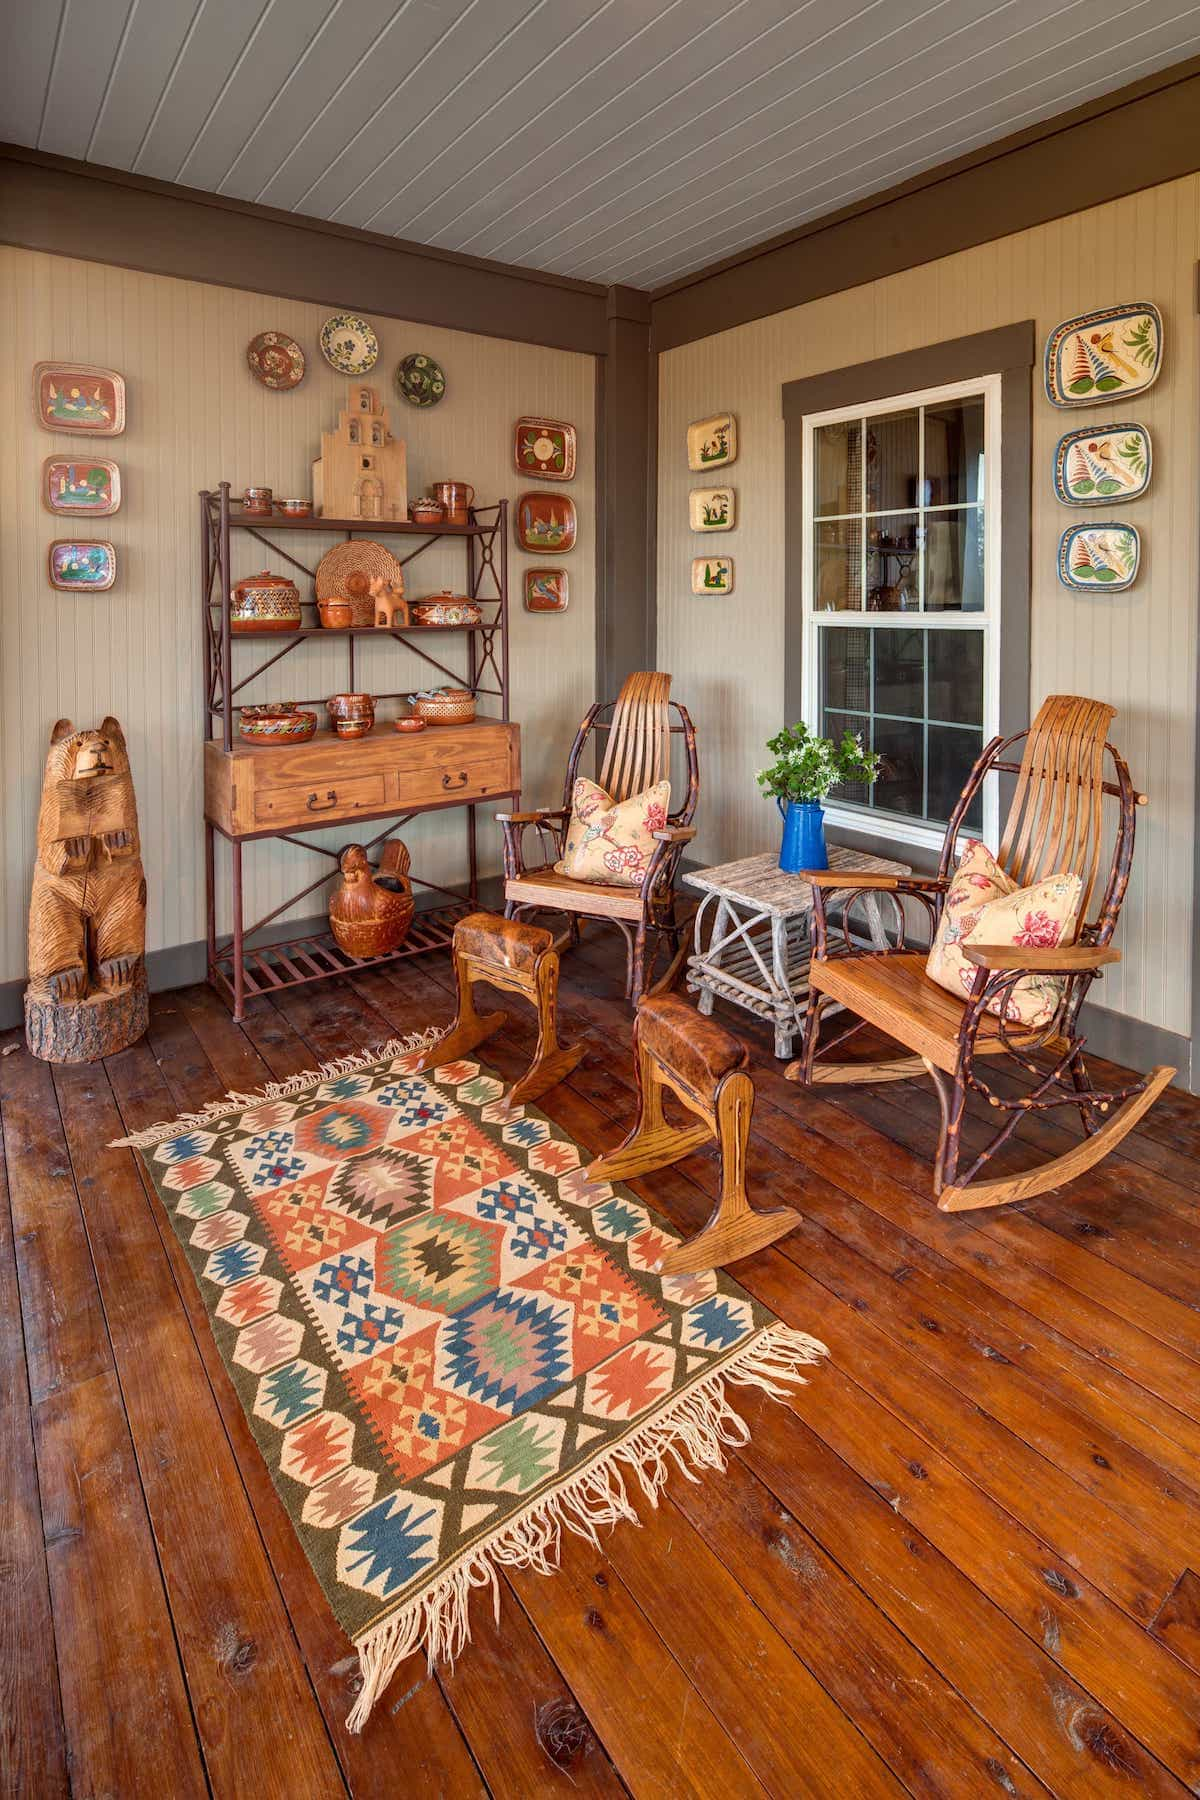 Bold Tribal Print Southwestern Rug For Wooden Rocking Chairs Create Cozy Porch Seating Area (Image 2 of 15)